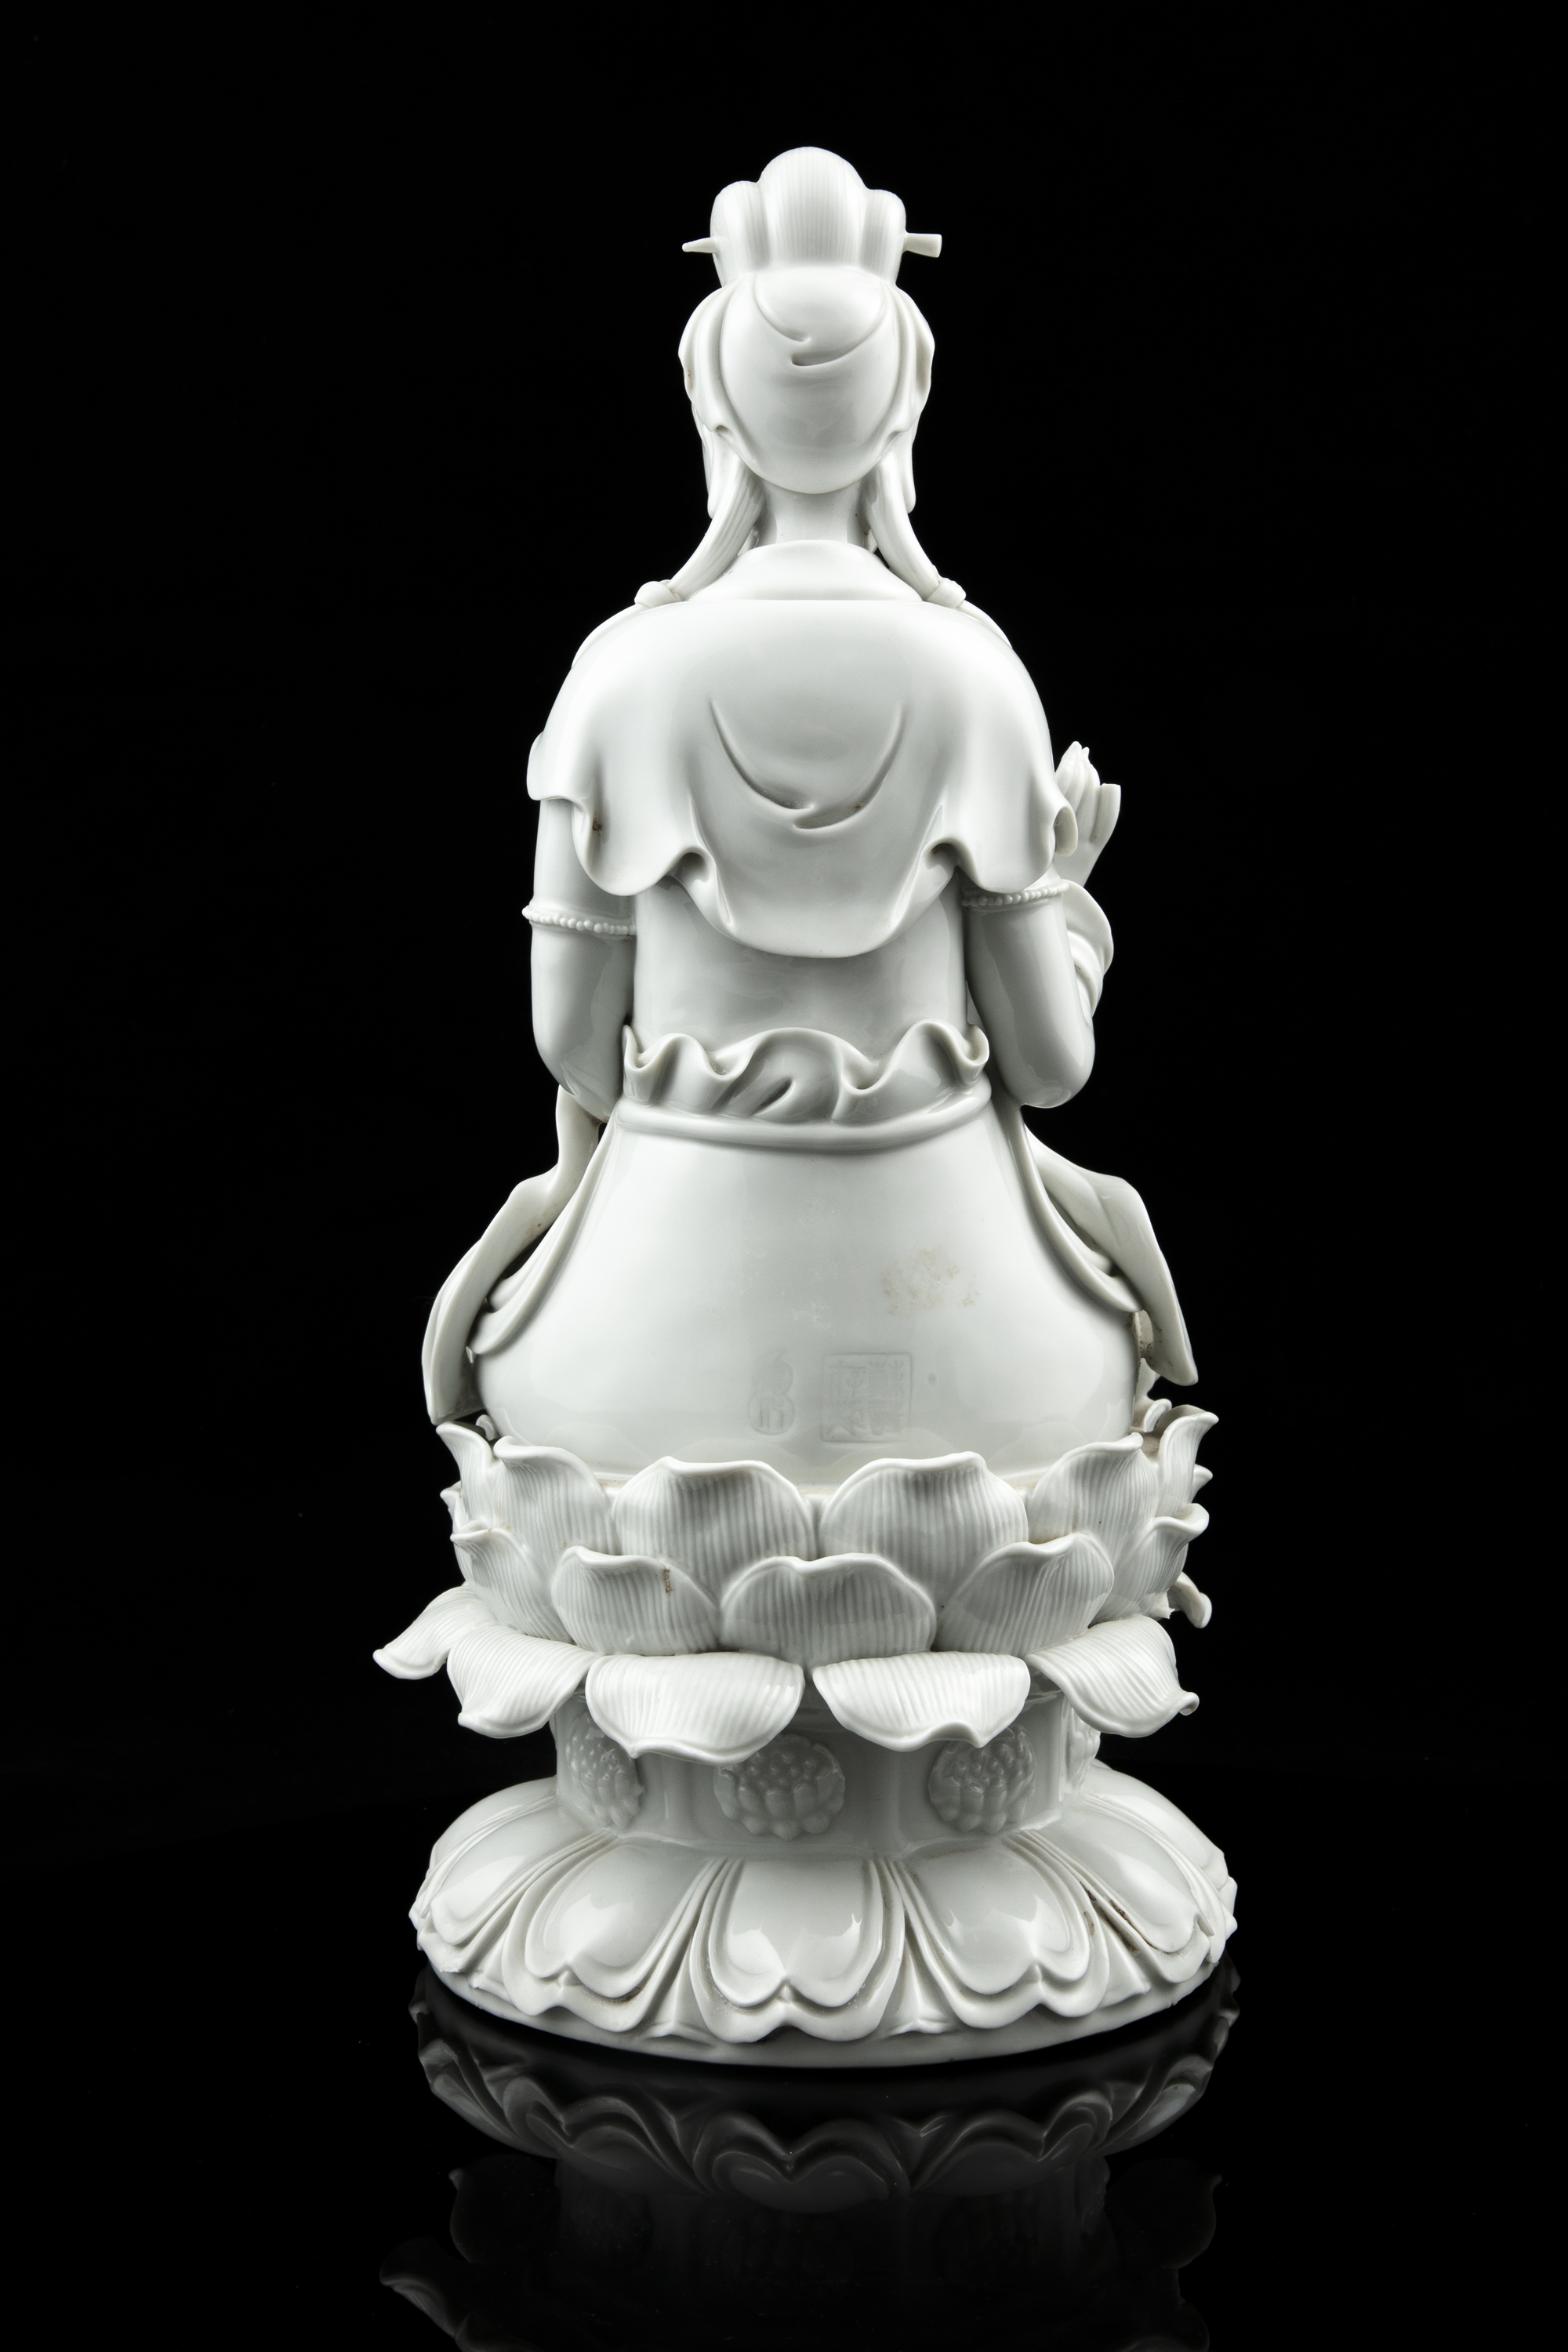 A LARGE DEHUA FIGURE OF A SEATED GUANYIN China, 19th to 20th century The goddess of mercy is - Image 10 of 18